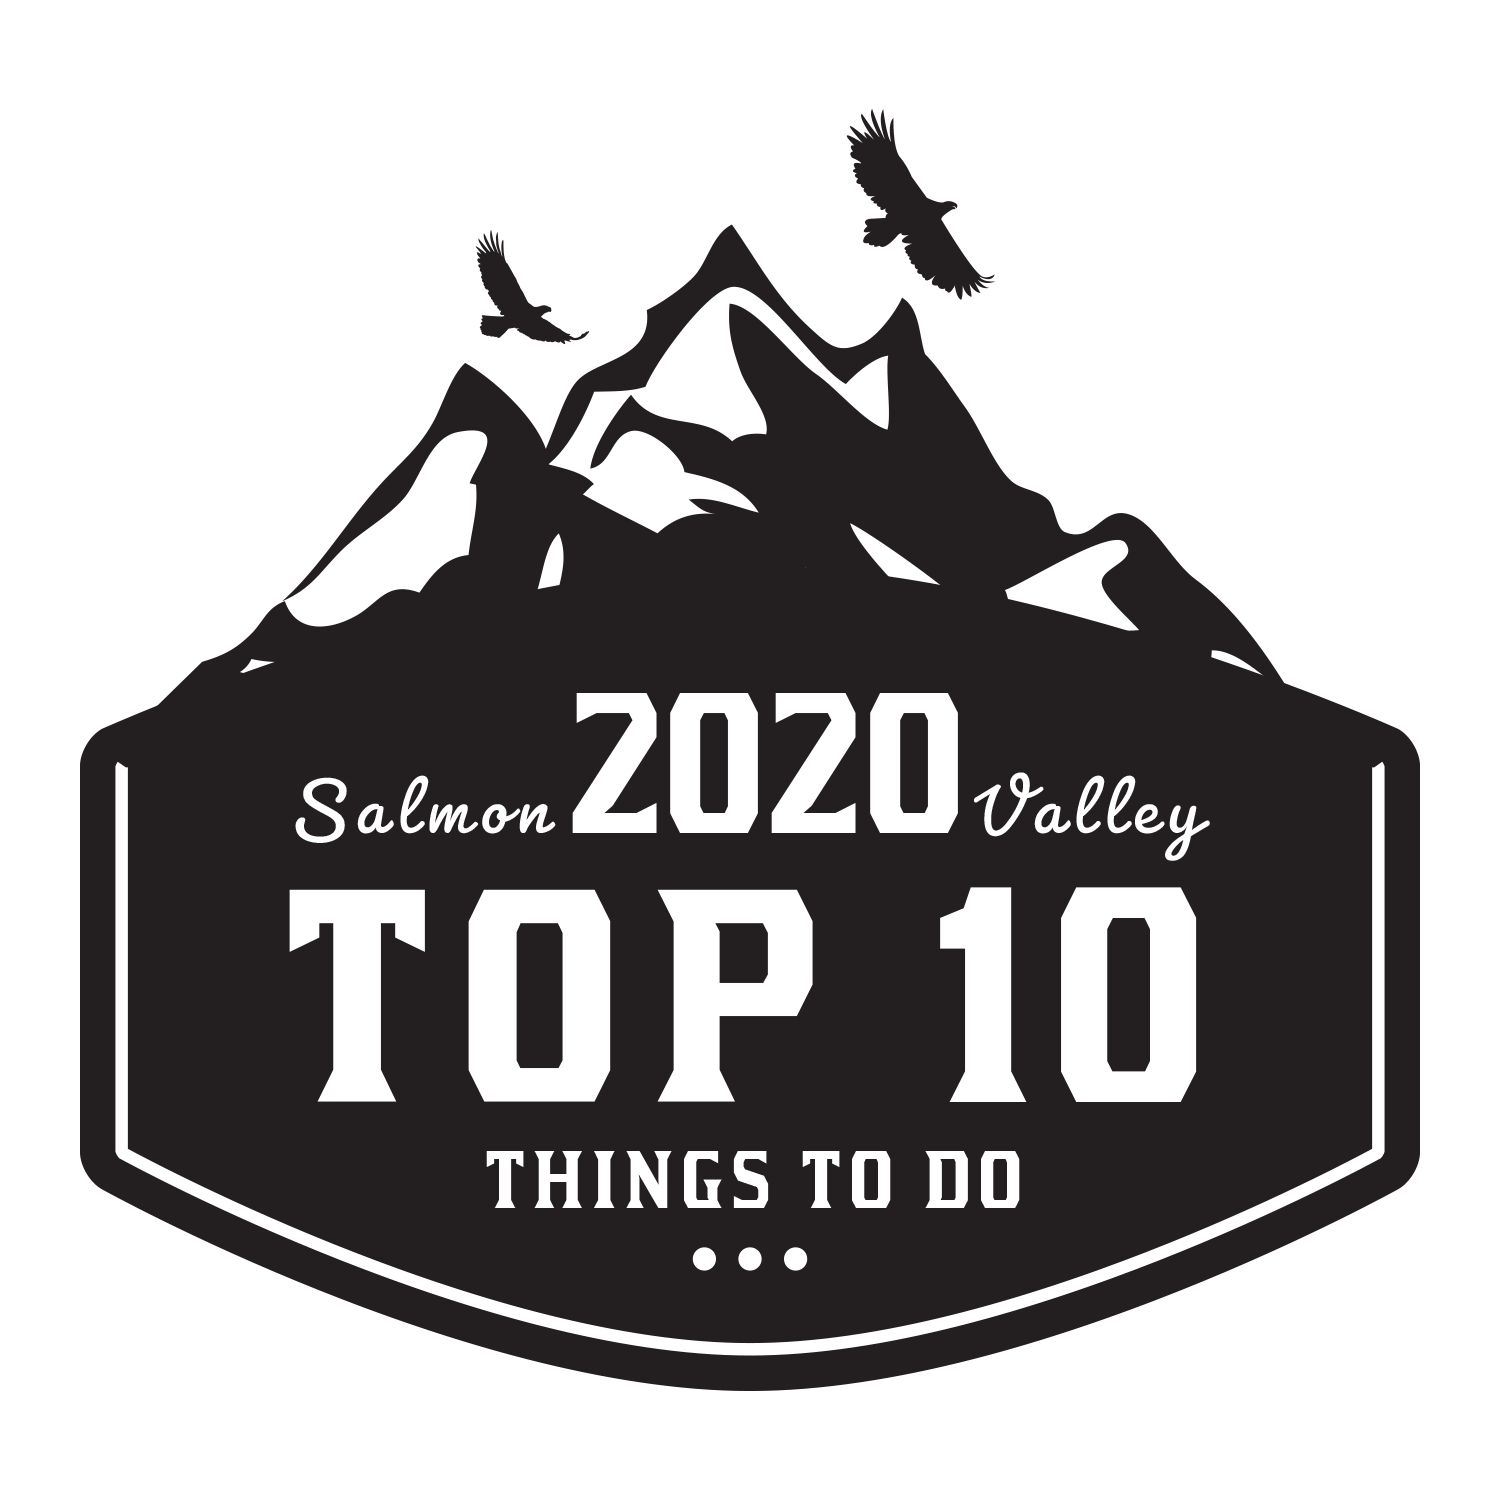 Top 10 things to do in Salmon